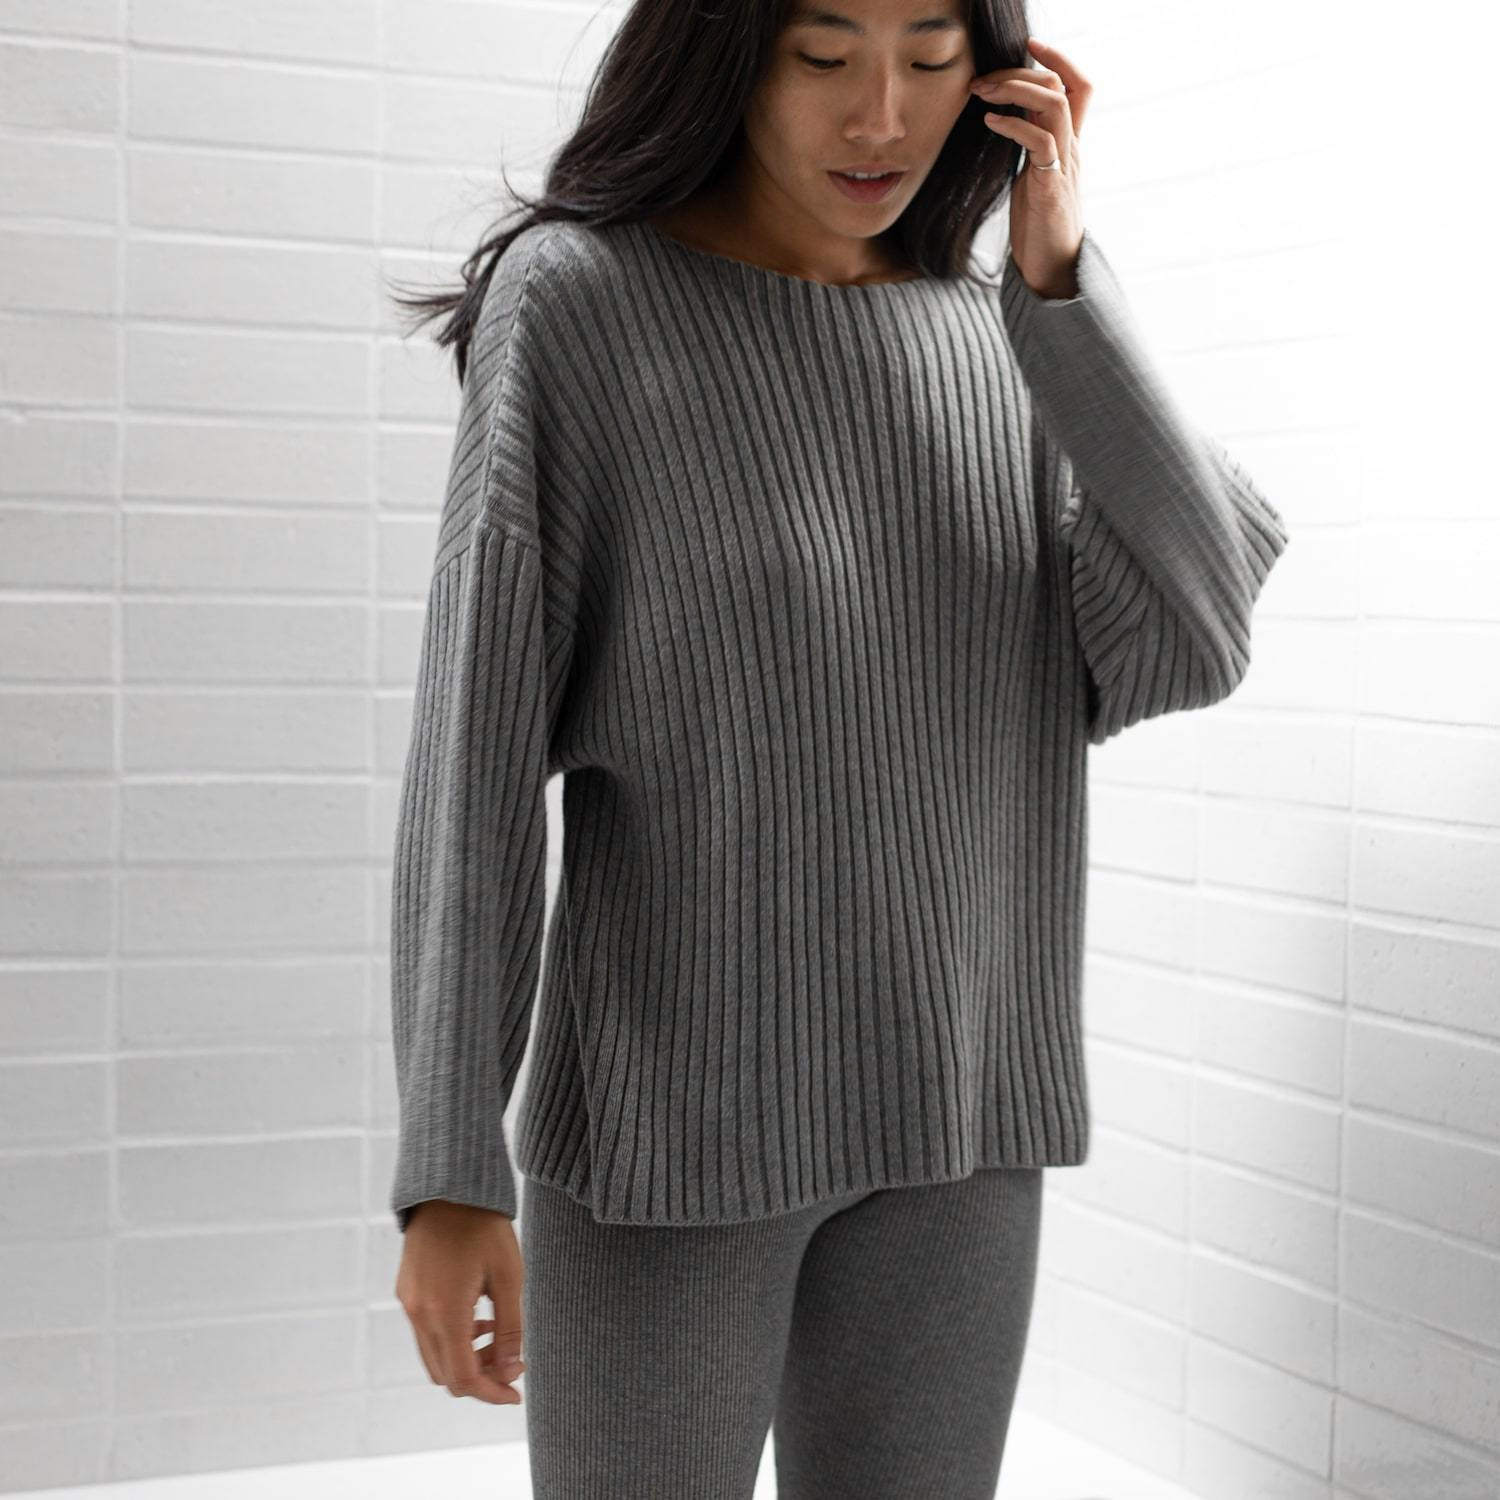 Lunya Sleepwear Cozy Pima Alpaca Ribbed Pullover - #Heather Grey